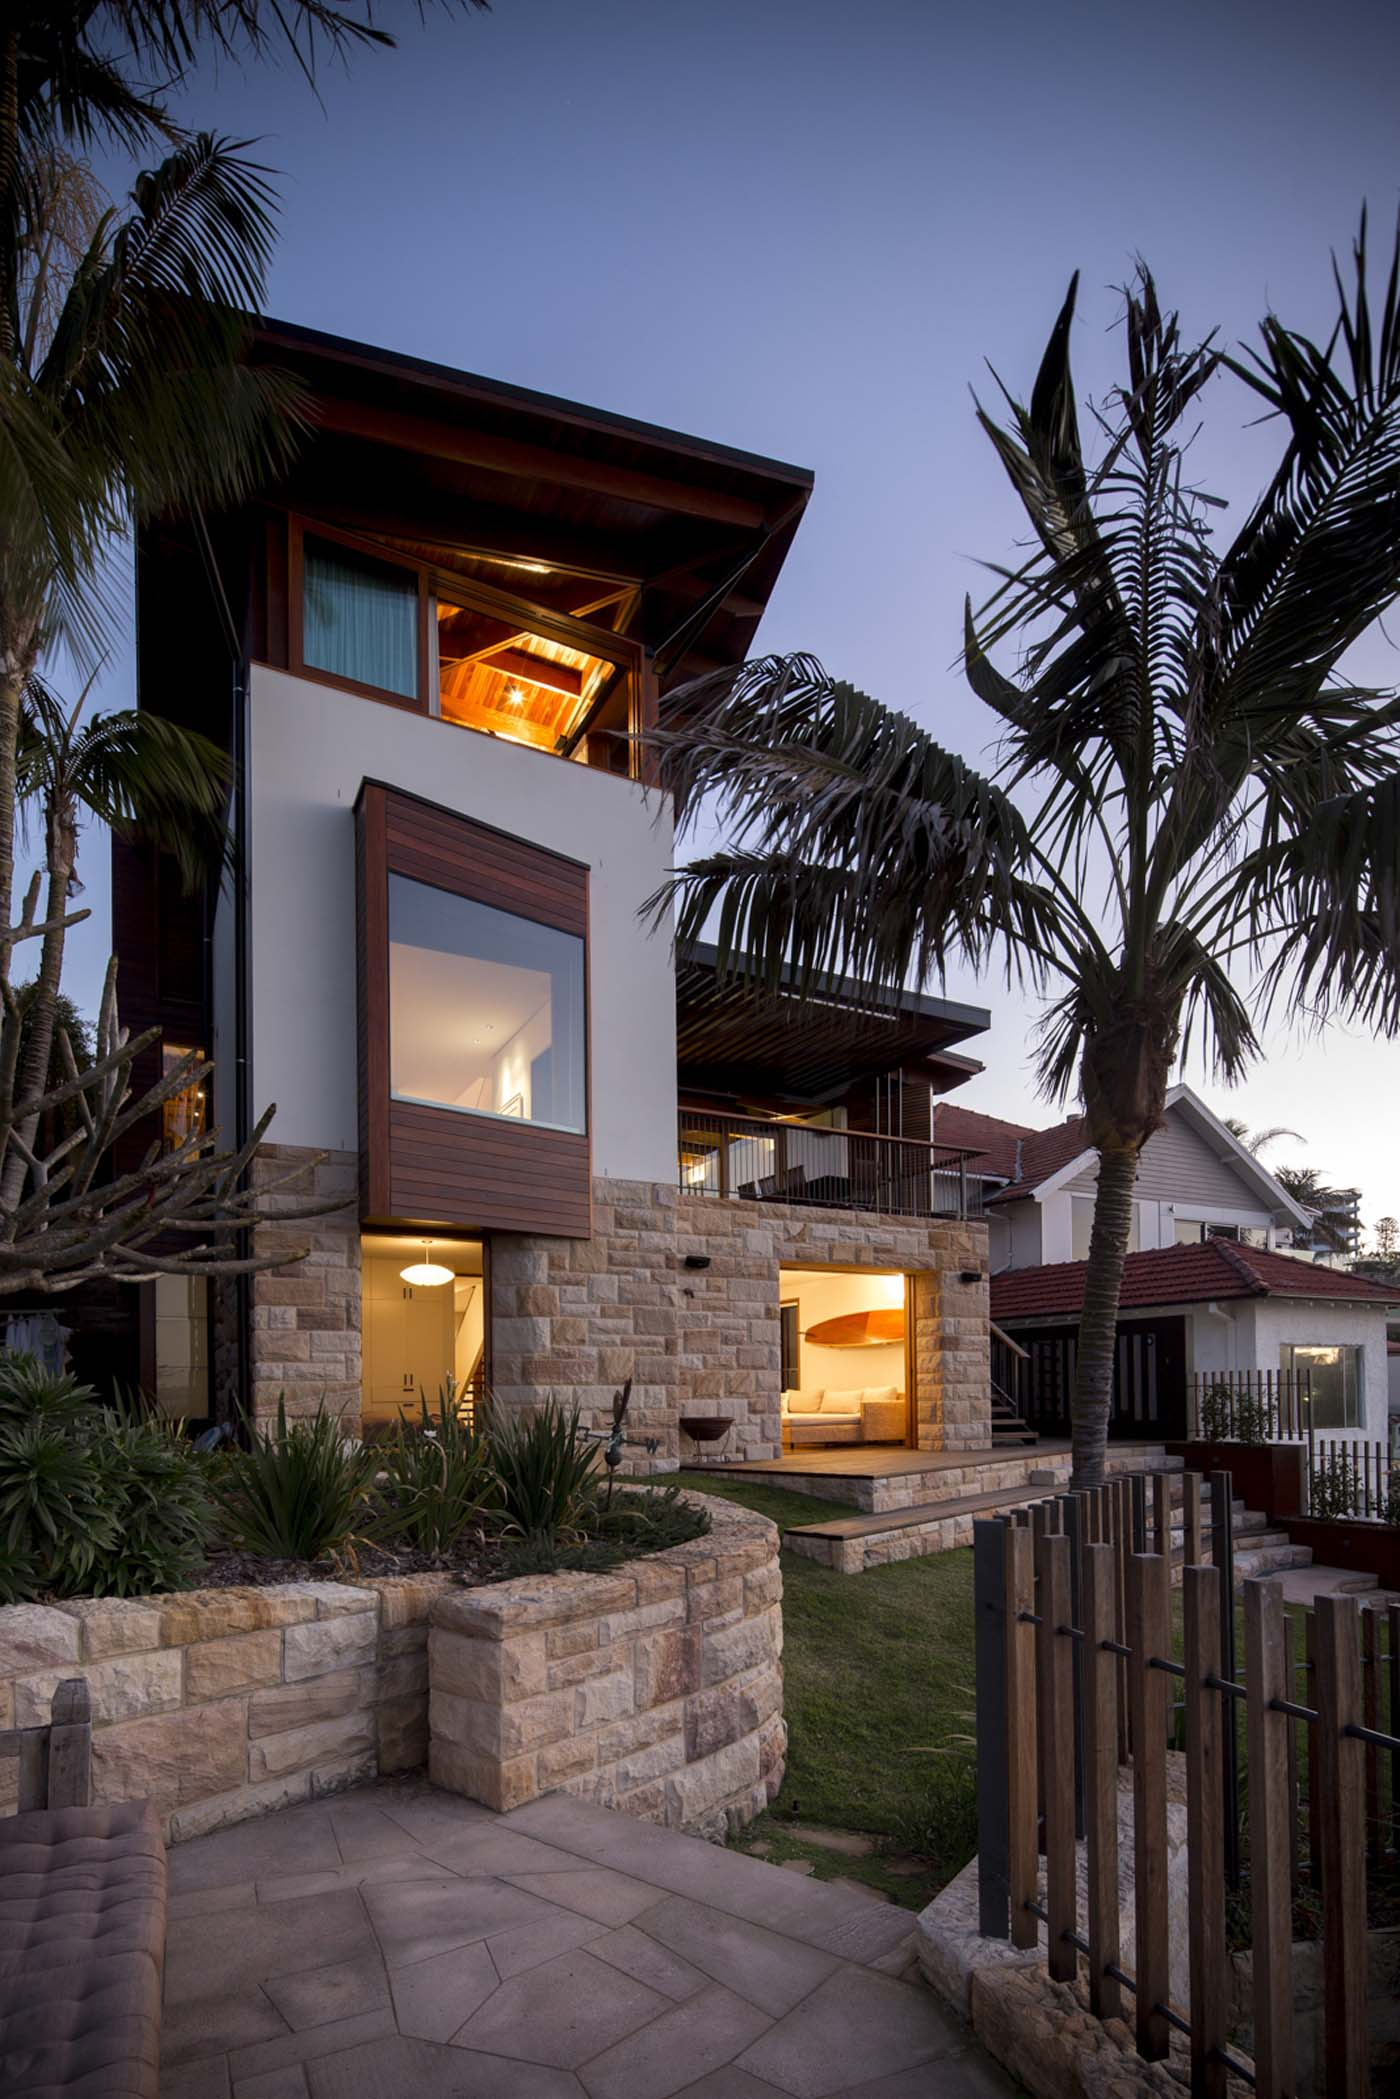 The Bower by Sam Crawford Architects, elevation overlooking Cabbage Tree Bay